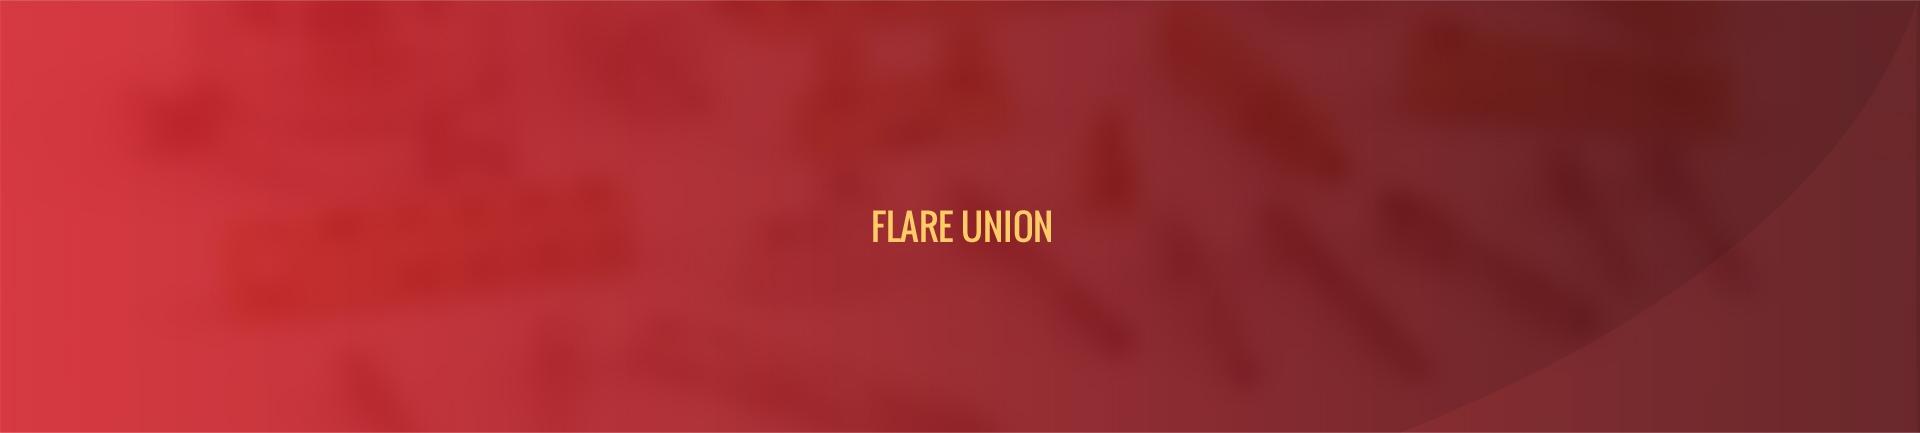 flare-union-banner